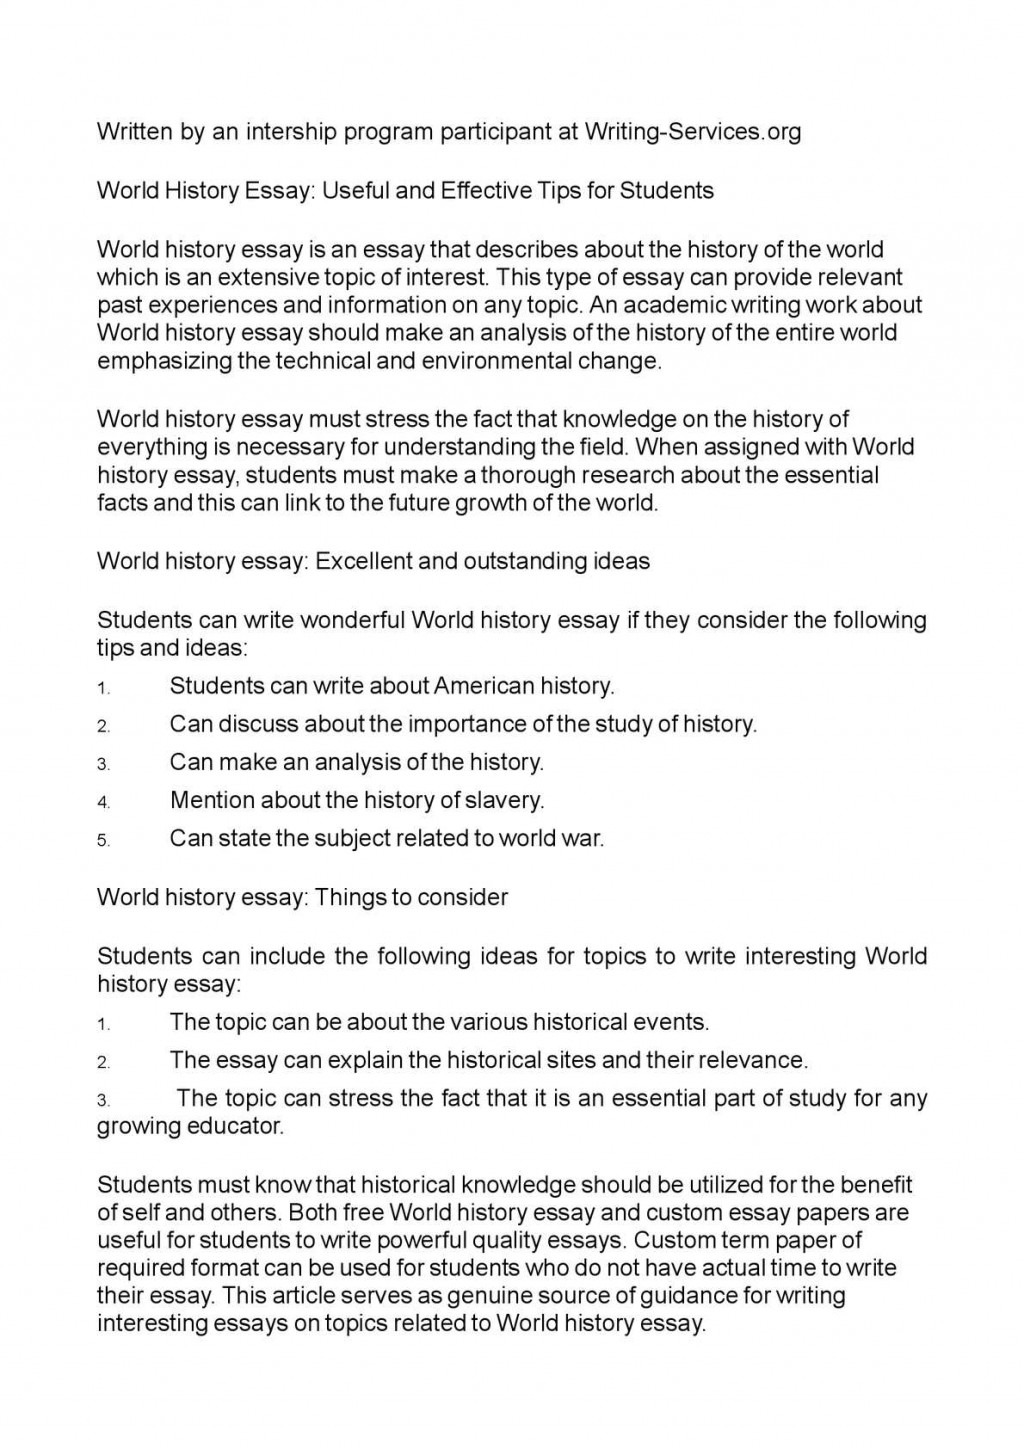 012 Good Topics For World History Researchs P1 Impressive Research Papers Large